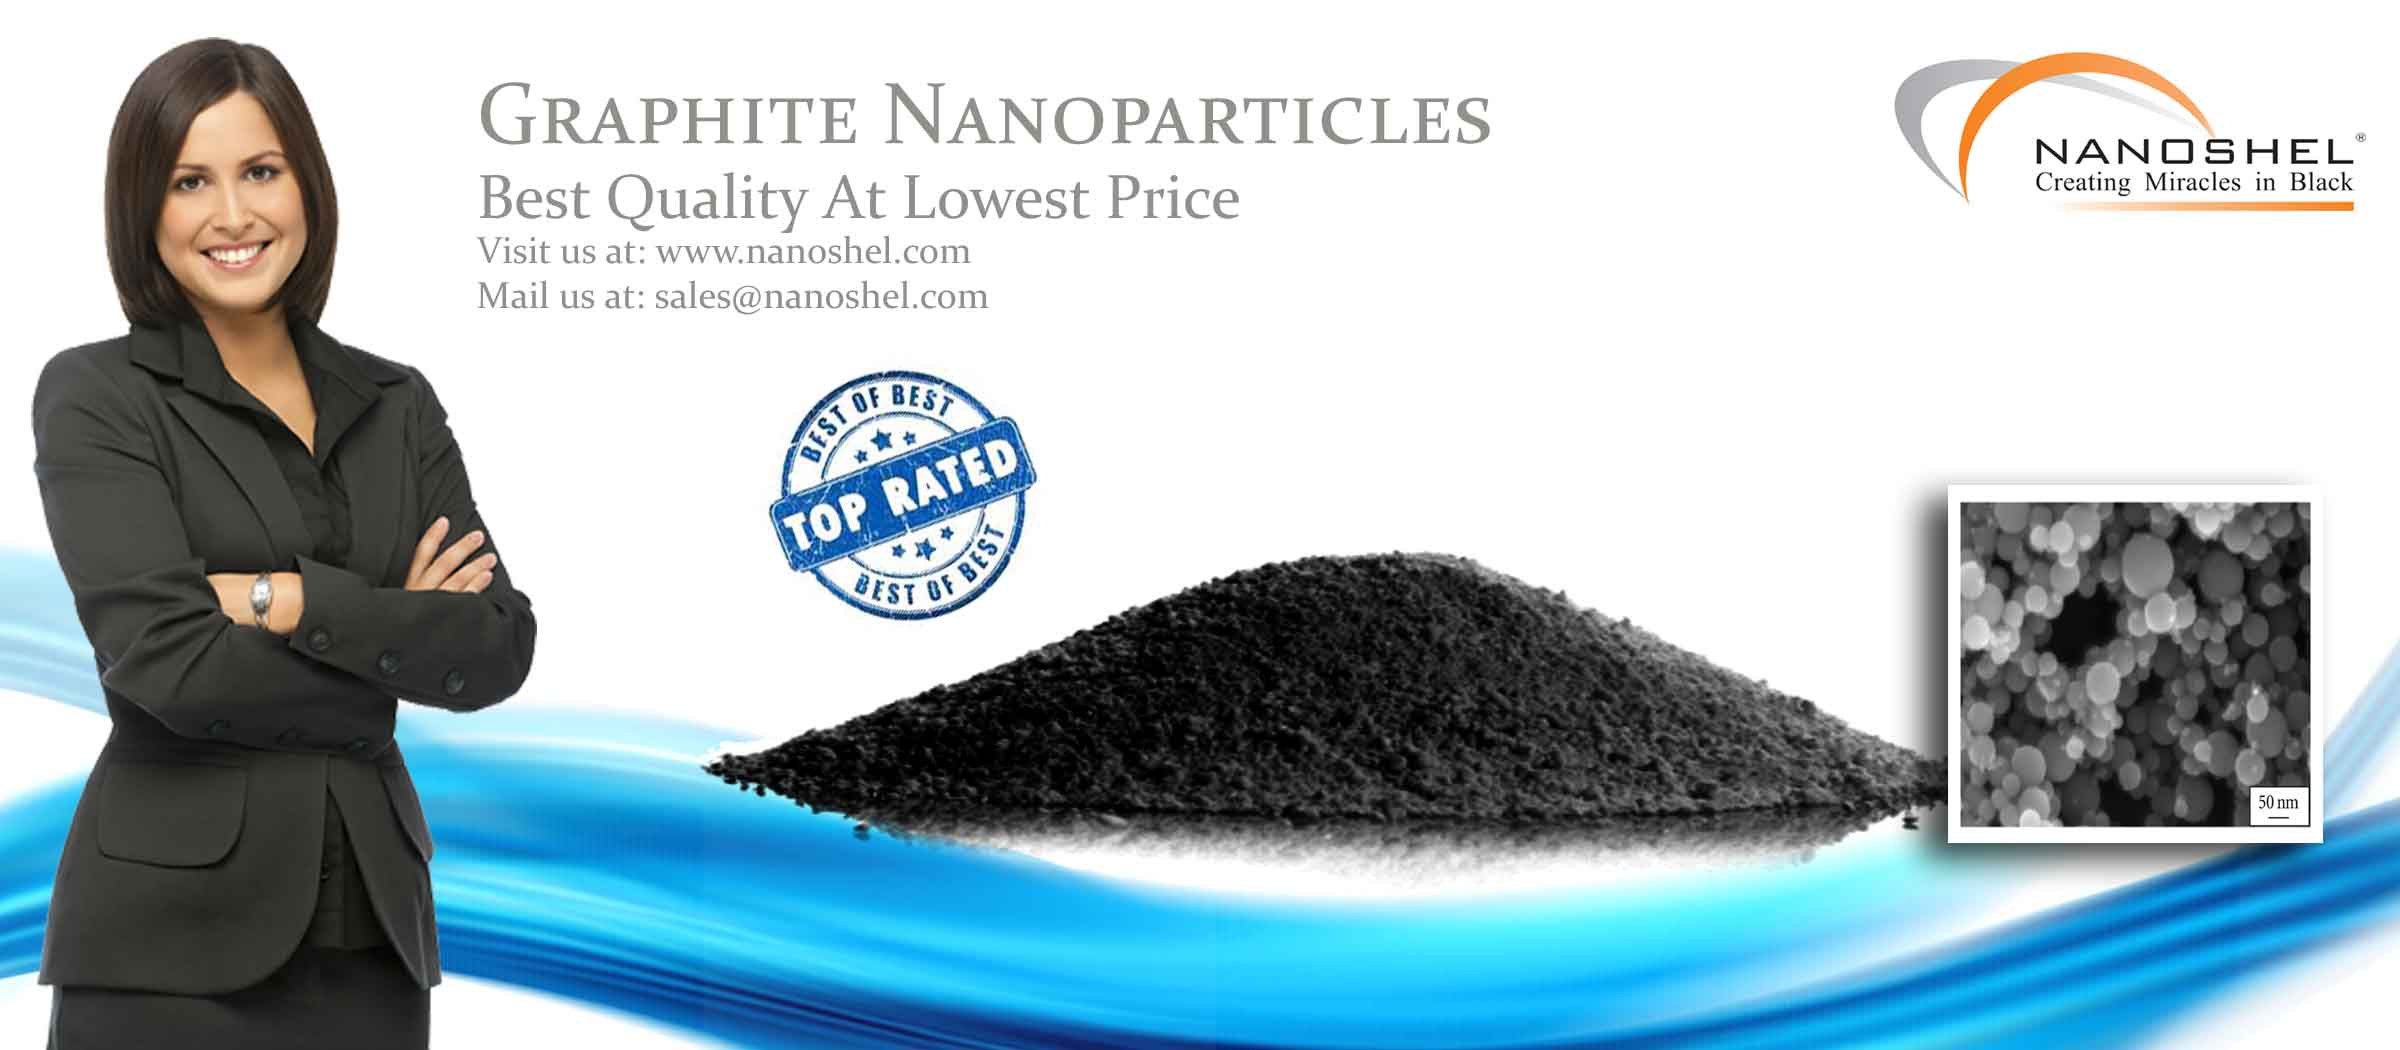 Graphite Nanoparticles and Nanopowder